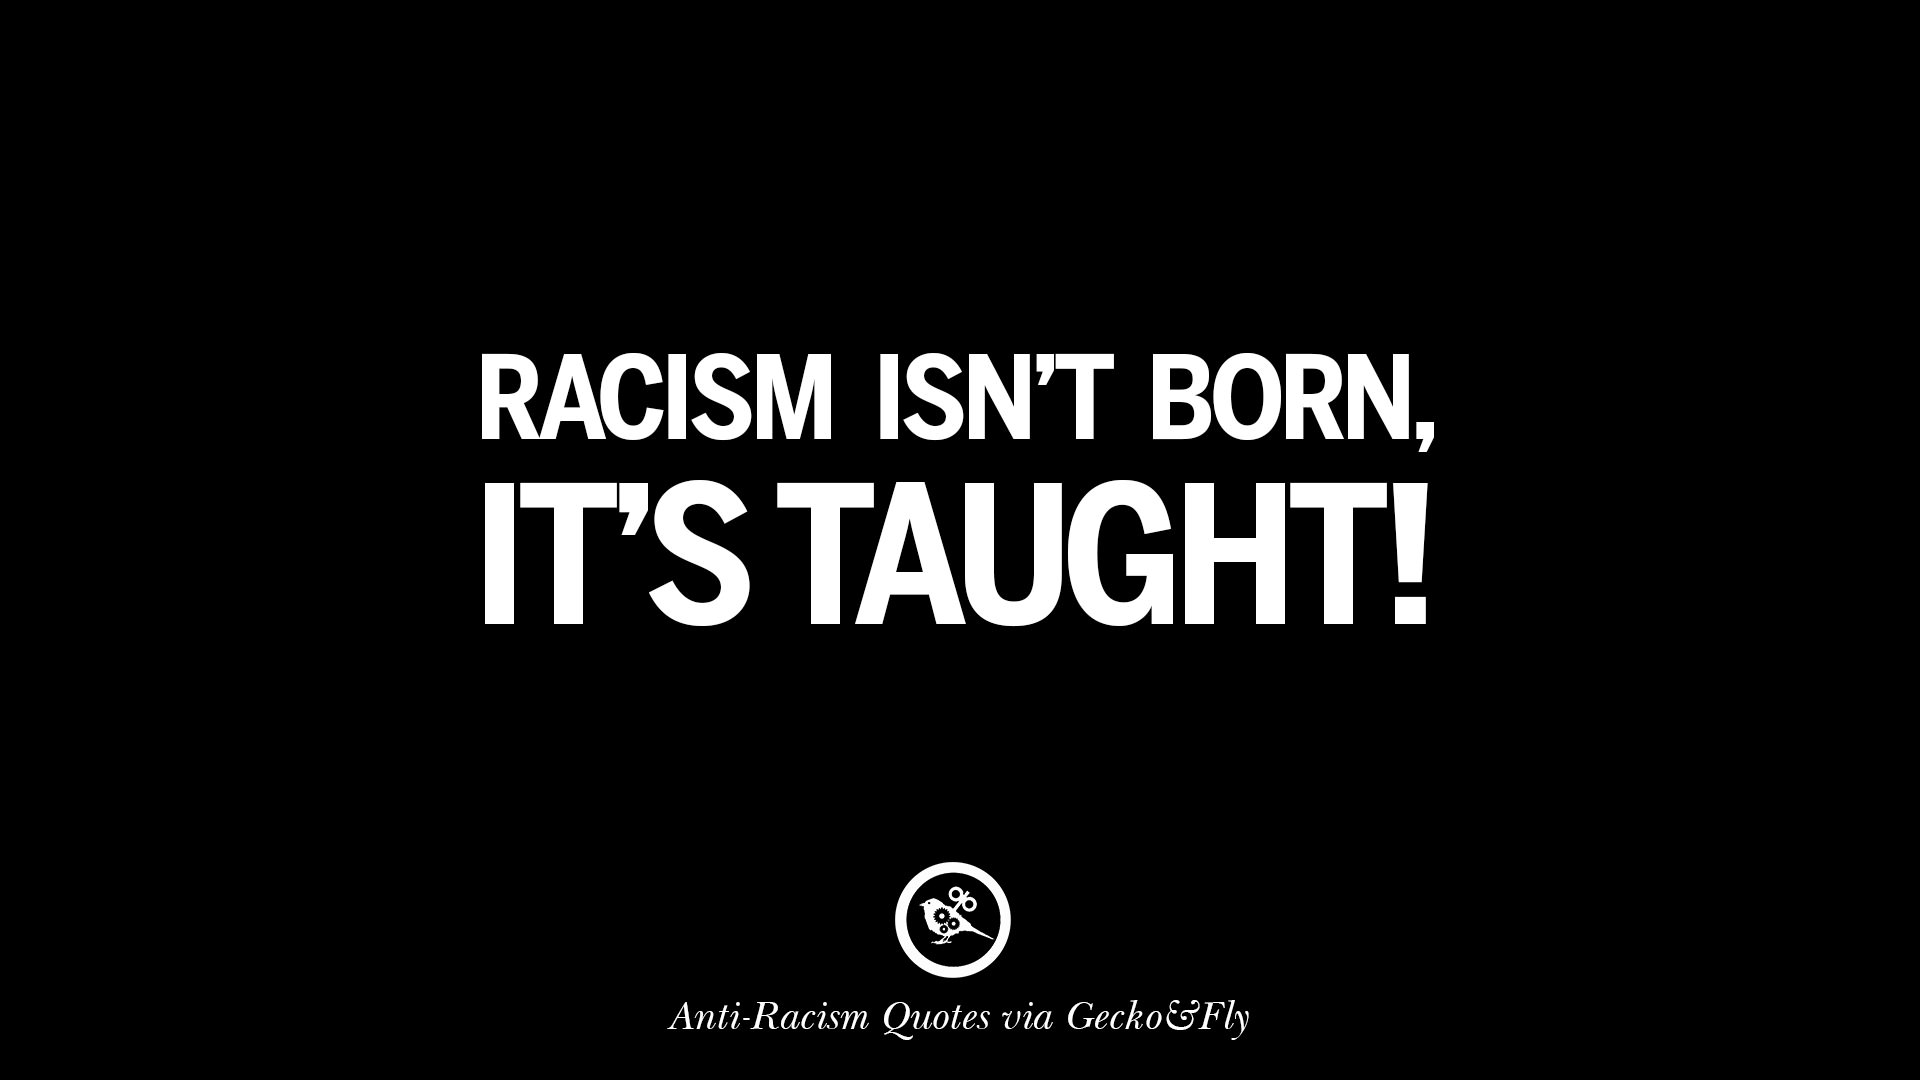 essay about race and racism This free sociology essay on racism in society is perfect for sociology students to use as an example a melting pot of race, religion, gender.